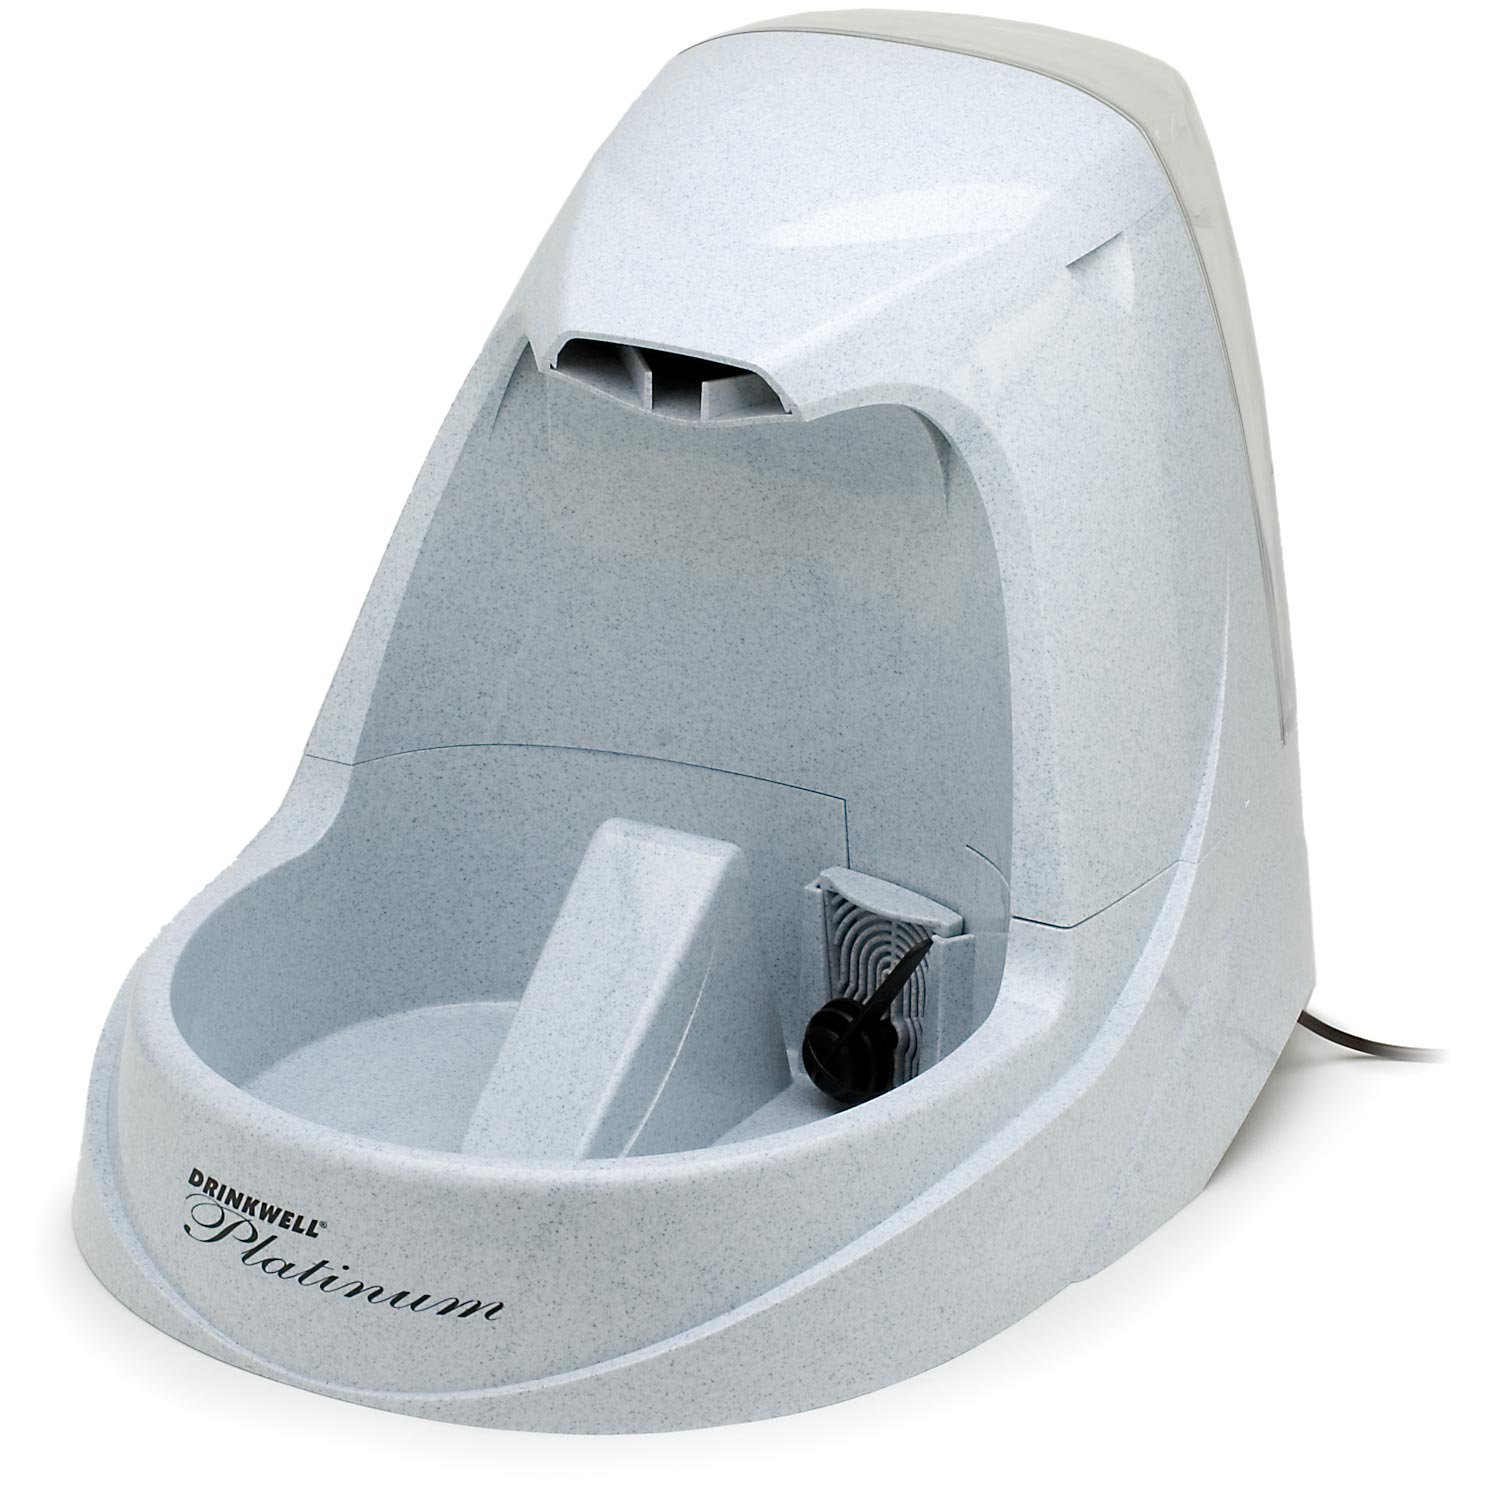 Petco Automatic Water Fountain For Cats Cat Supplies